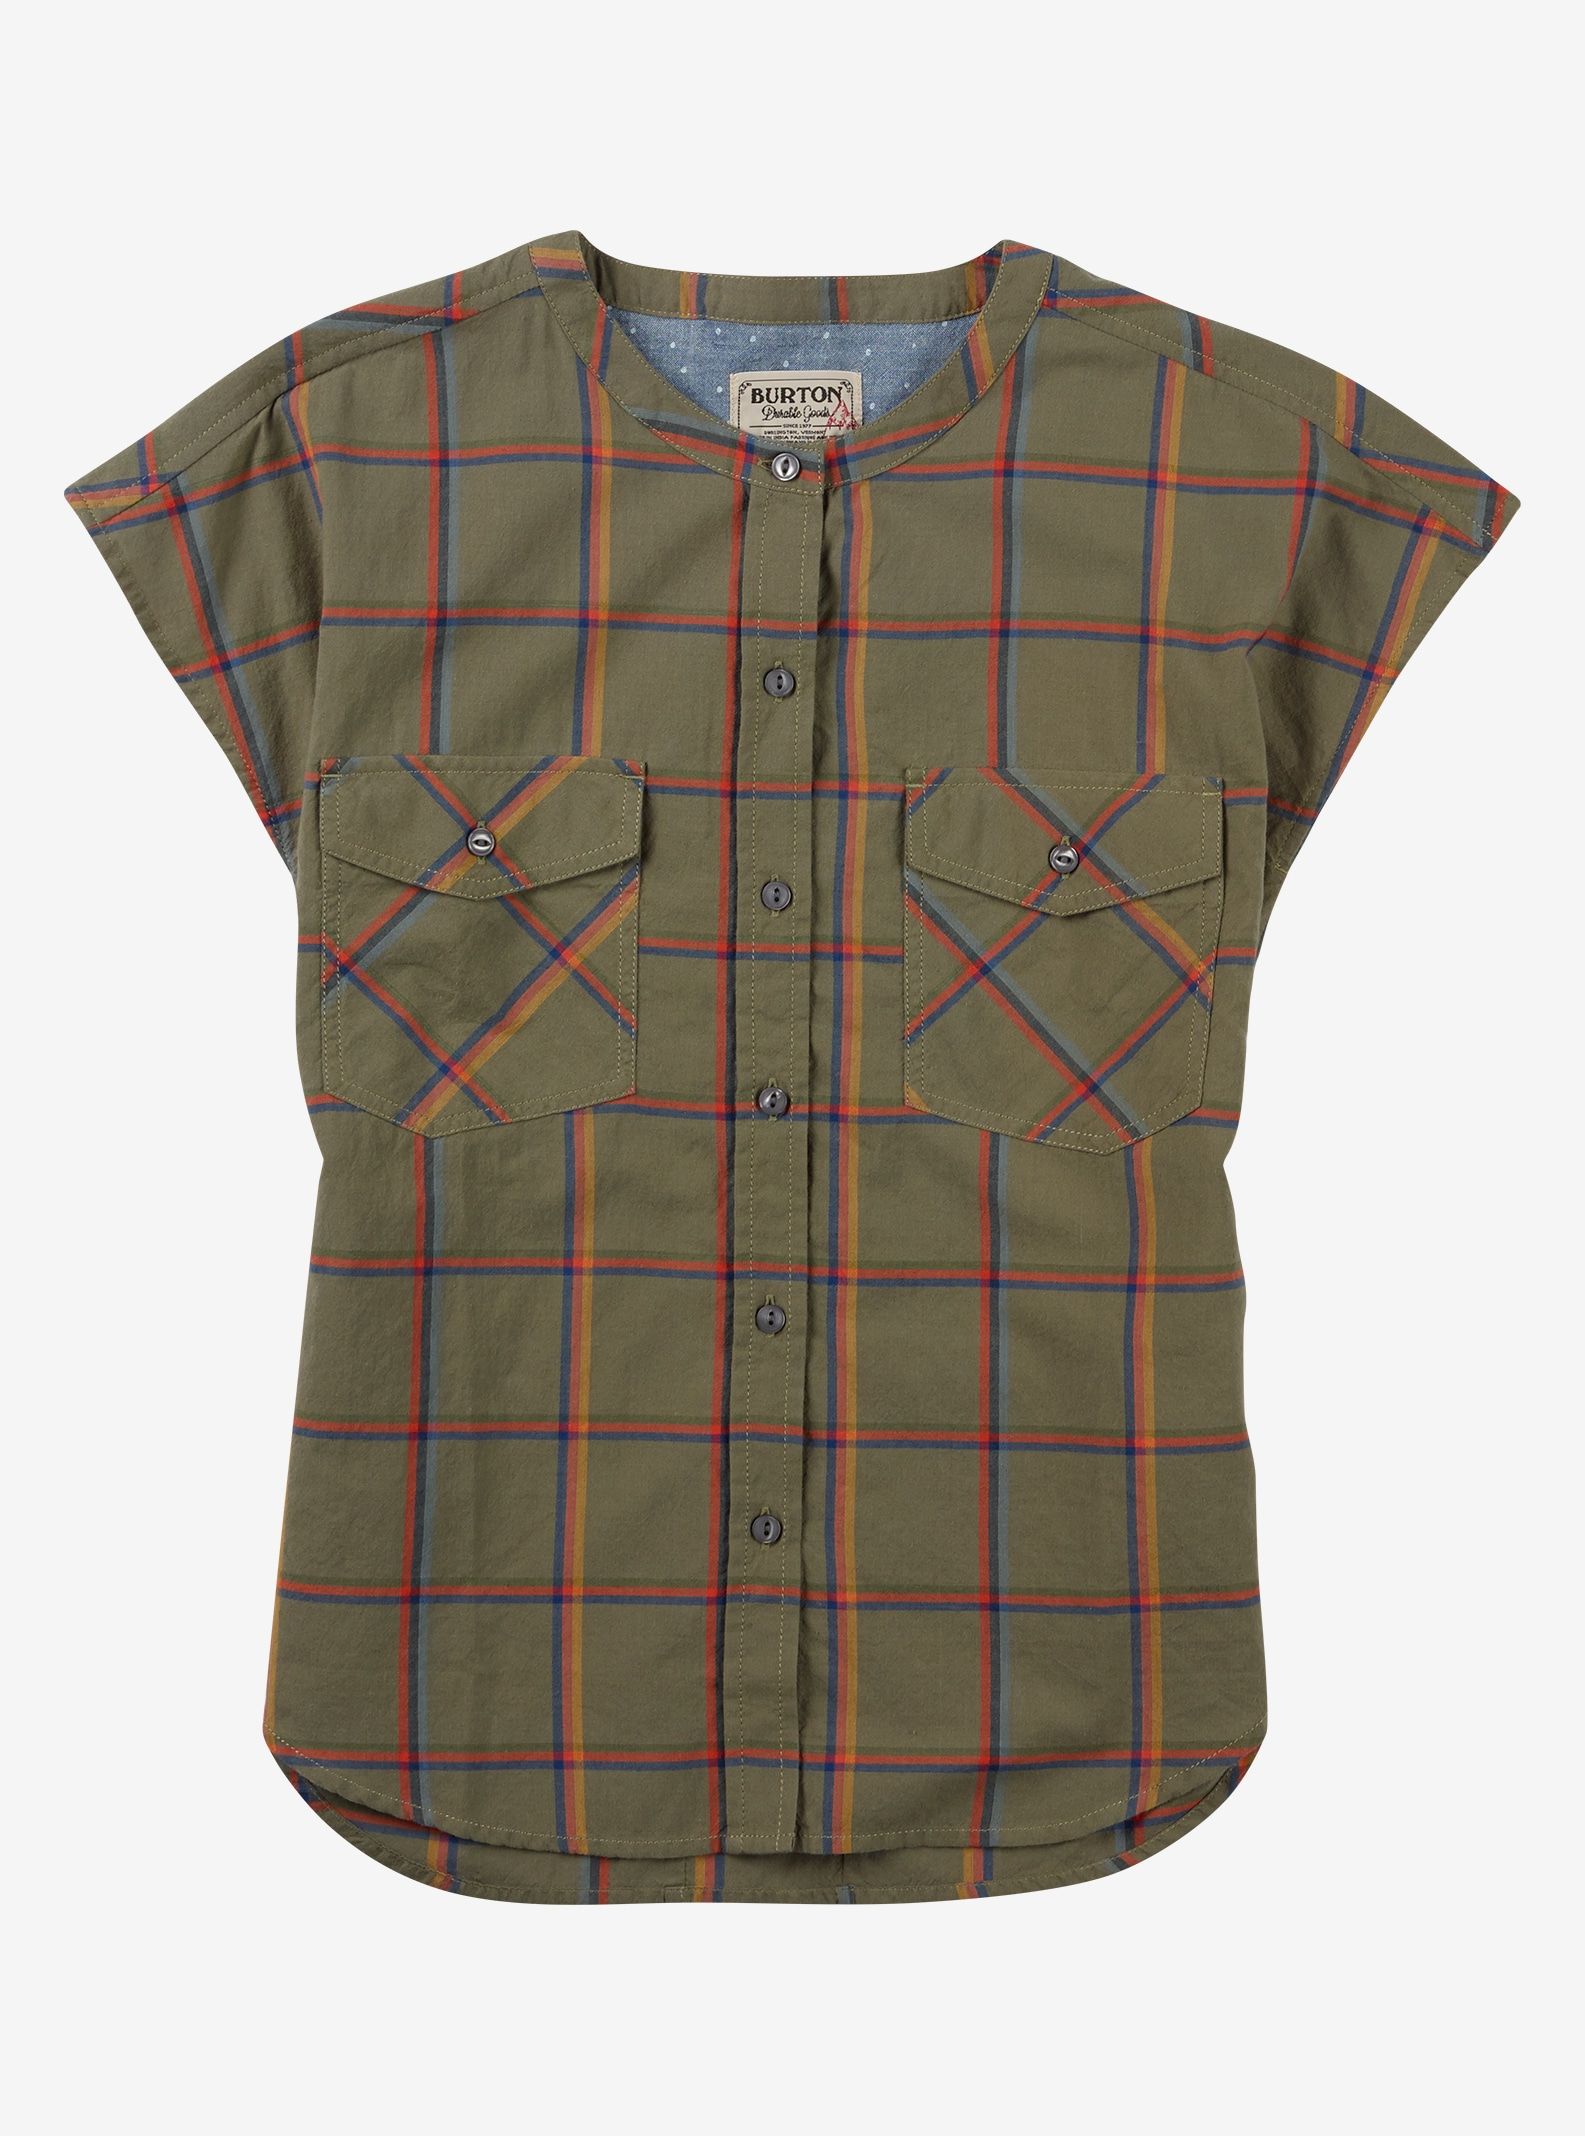 Burton Darcie Short Sleeve Shirt shown in Lichen Green Bonfire